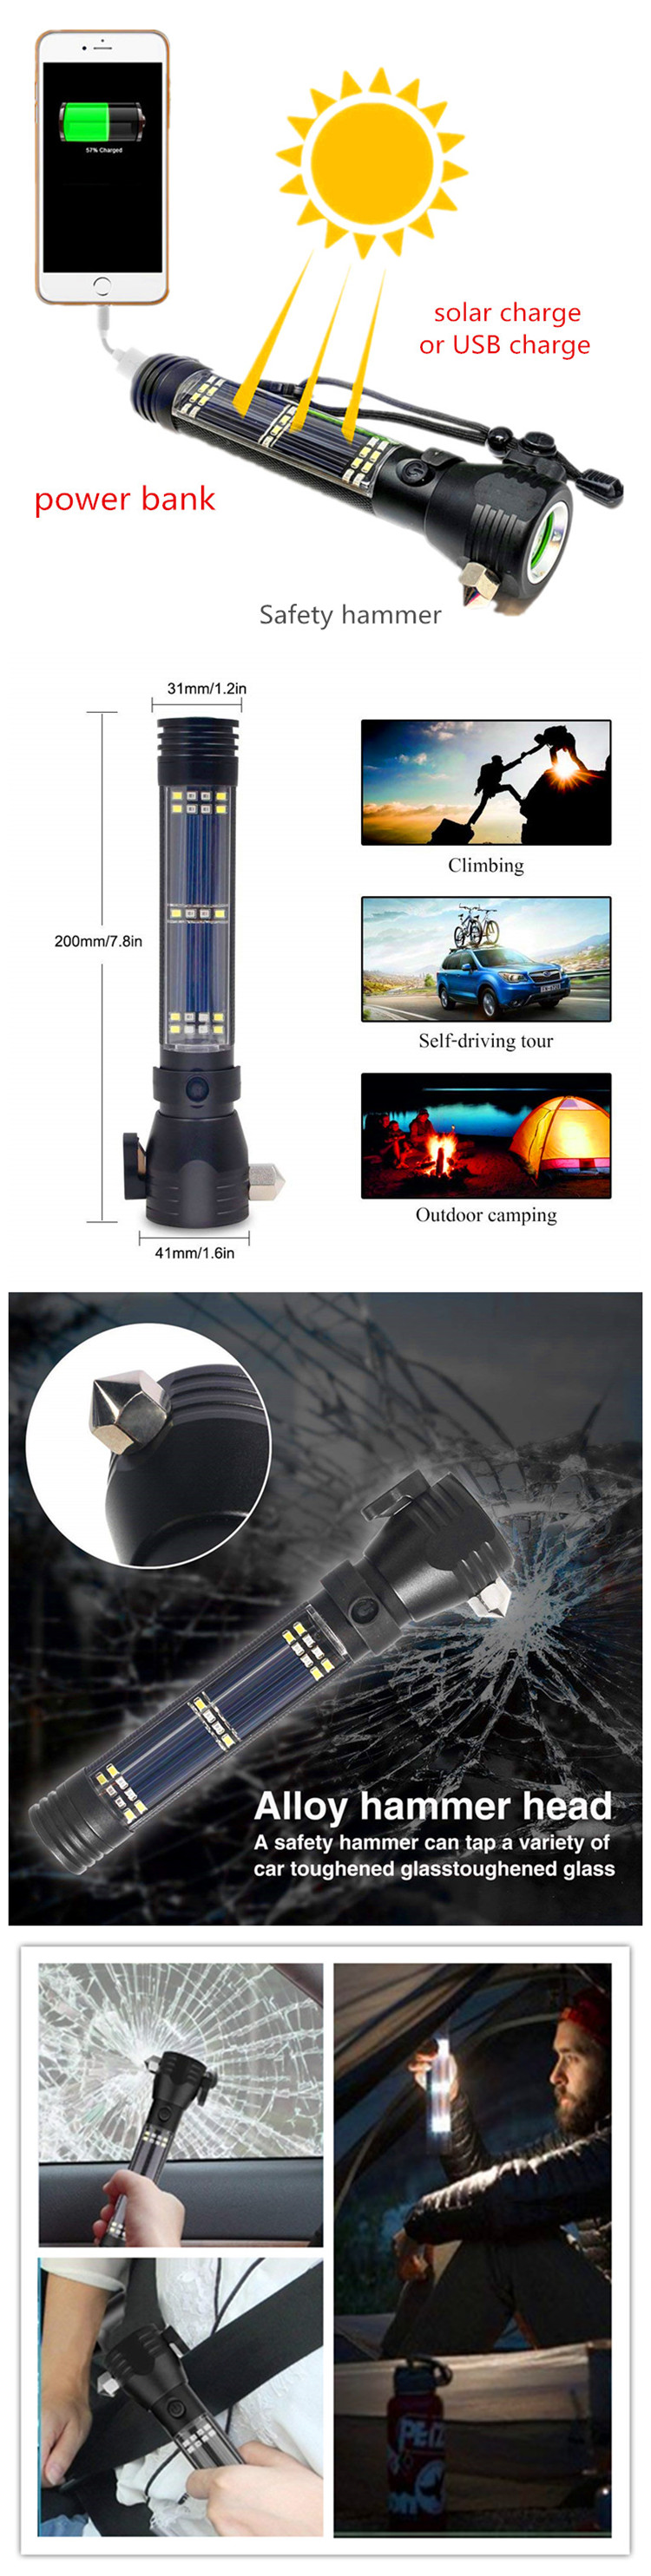 Amazon hot sale USB Rechargeable Solar Torch Light,Self defence Escape rescue Car Broken Windows Solar Powered Led Flashlight